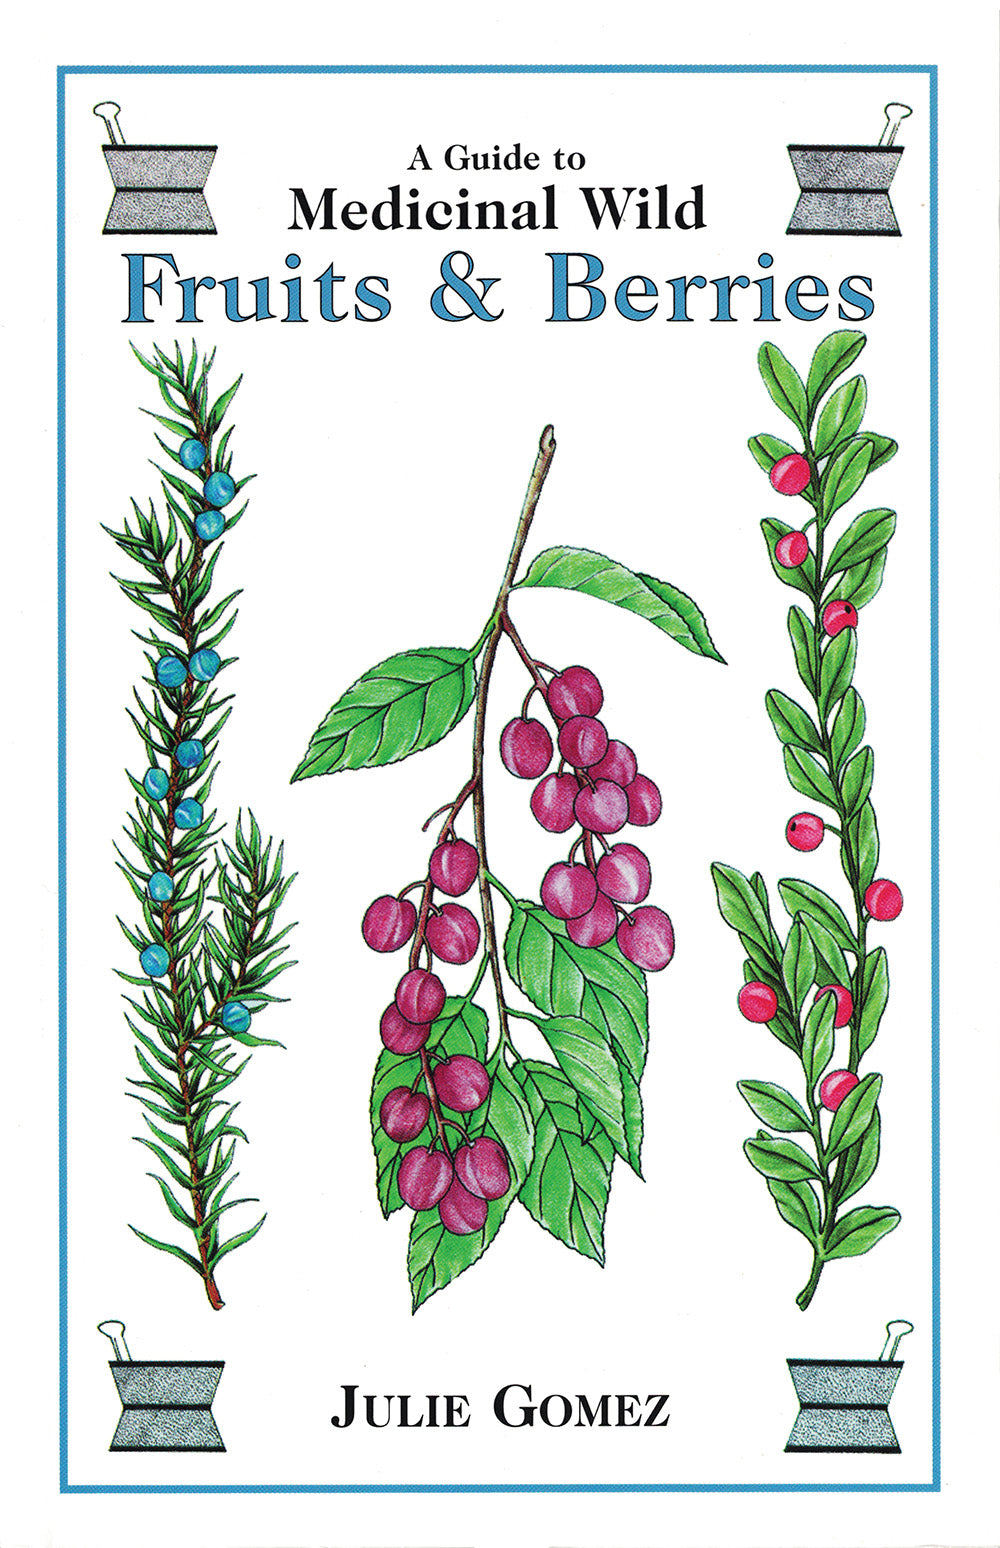 Guide to Medicinal Wild Fruits & Berries